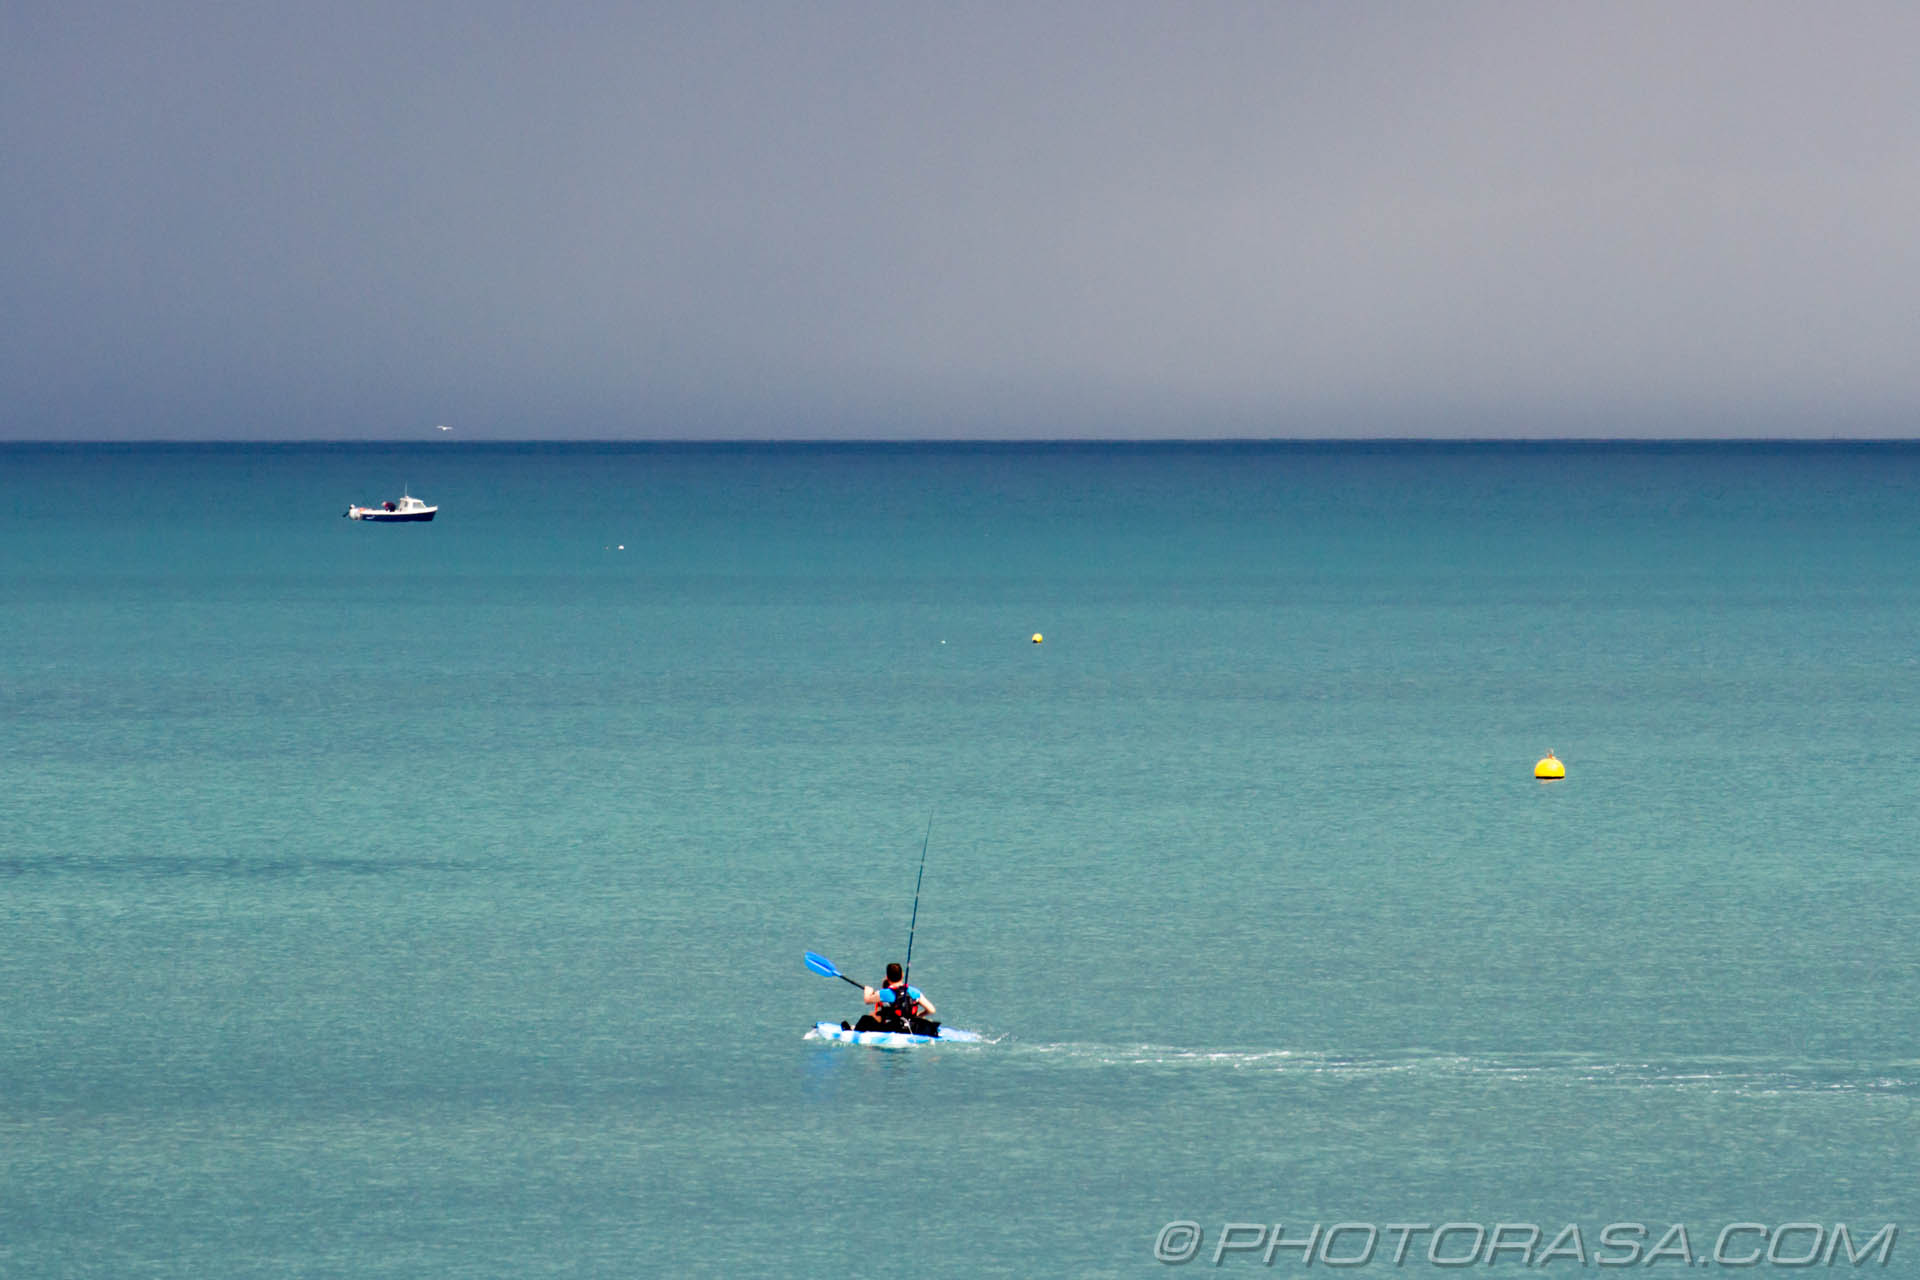 http://photorasa.com/sea-lyme-regis/canoeist-paddling-out-to-dark-blue-sea/